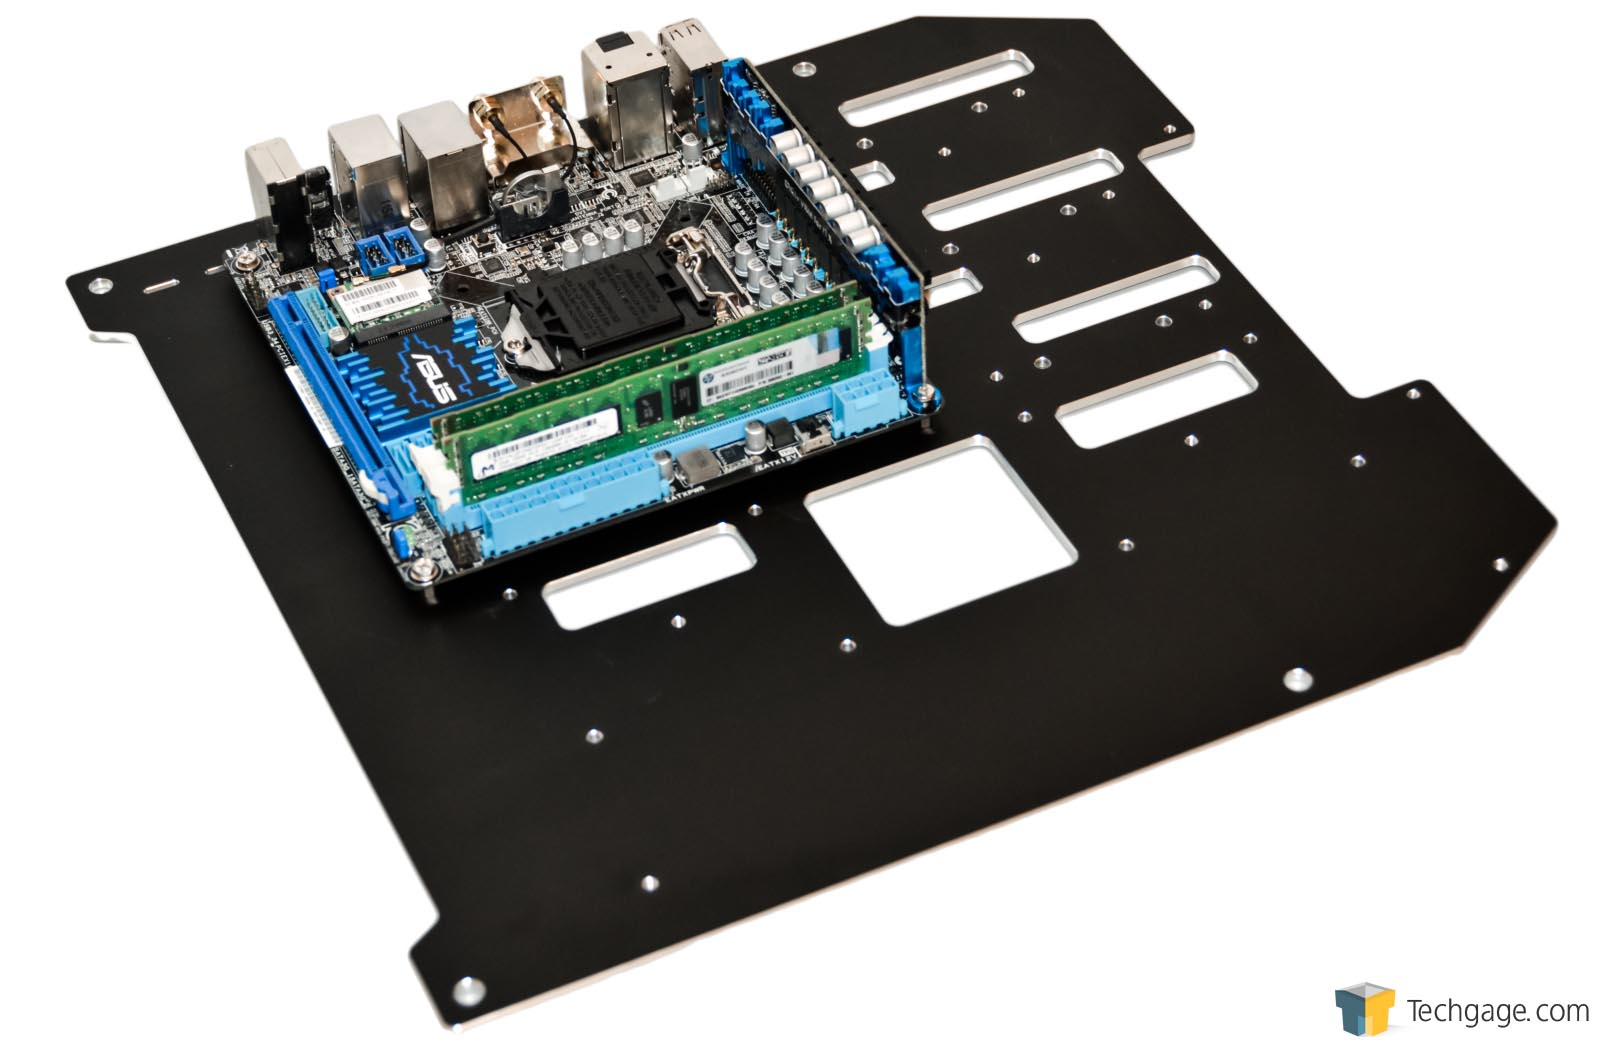 In Win D-Frame Mini Chassis Review – Techgage